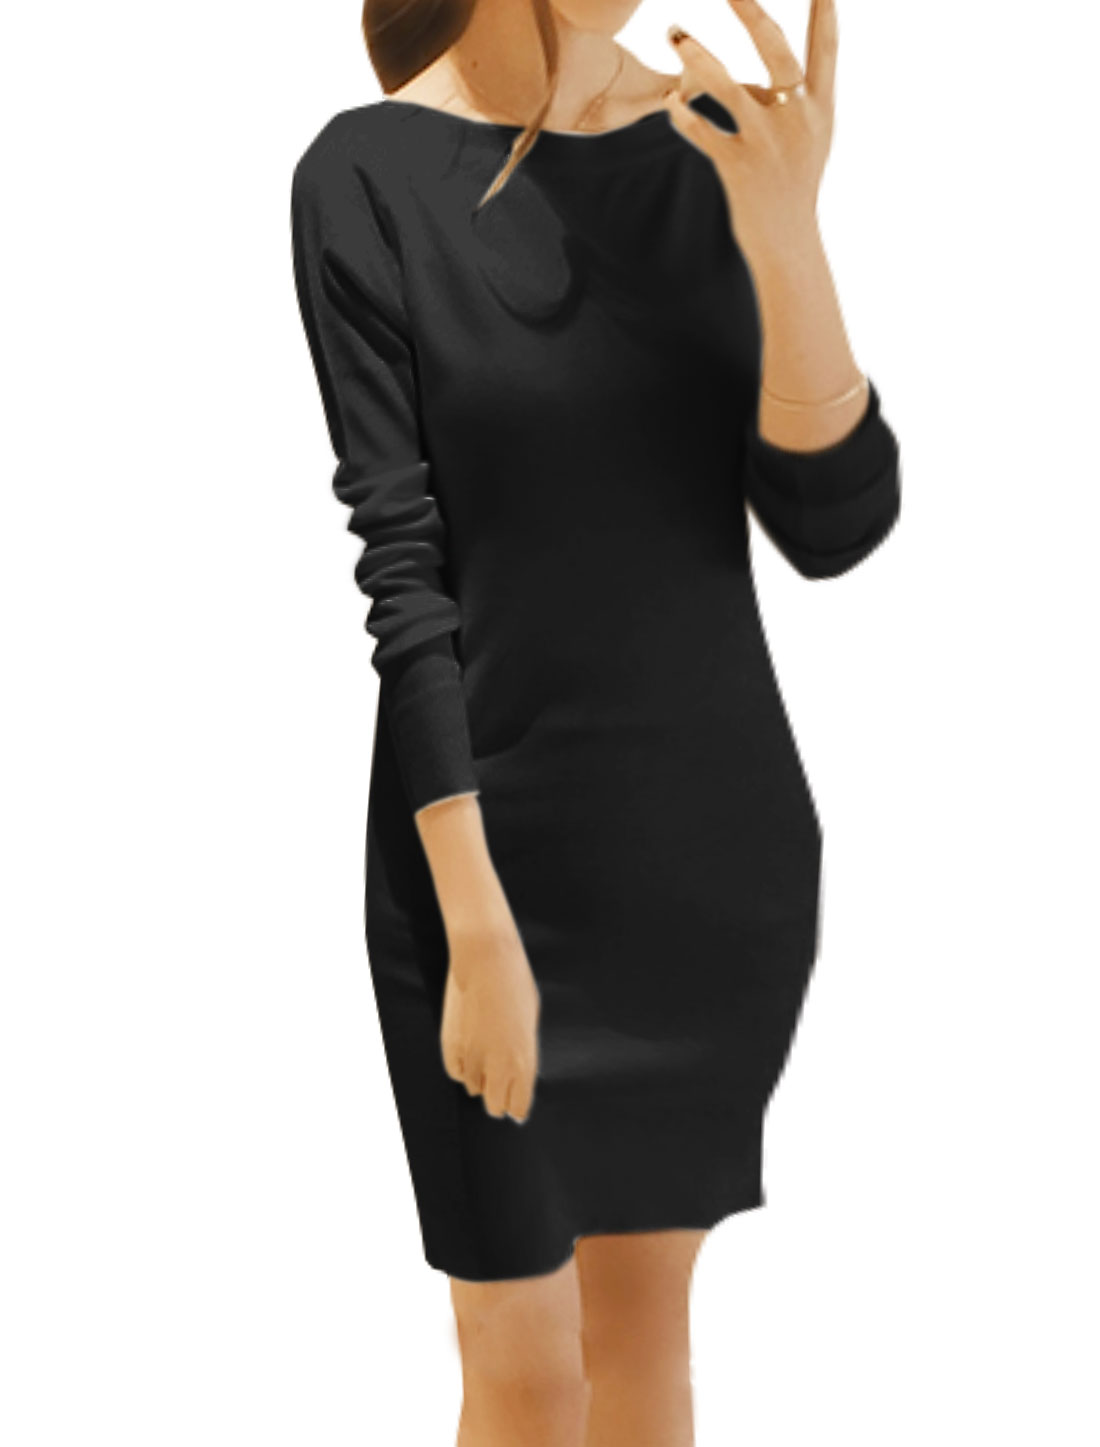 Women Boat Neck Long Sleeves Knitted Mini Sheath Dress Black XS